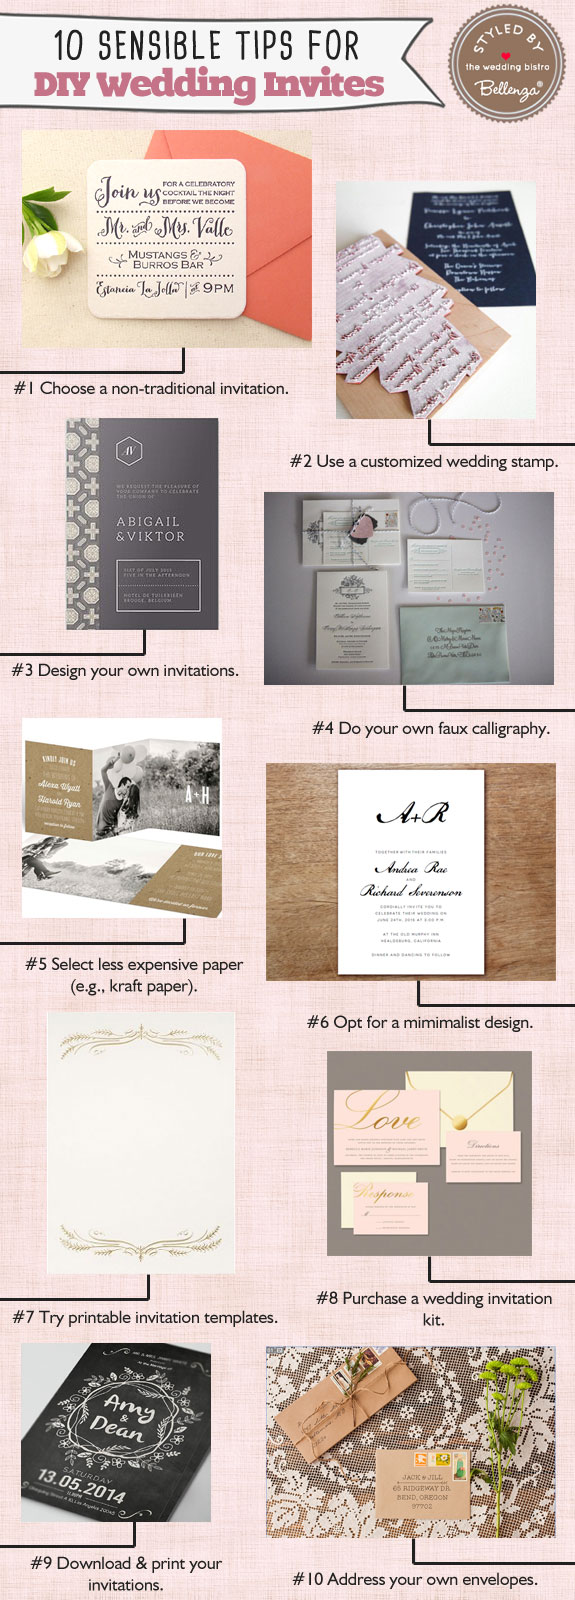 10 Sensible Tips for DIYing Your Wedding Invitations!